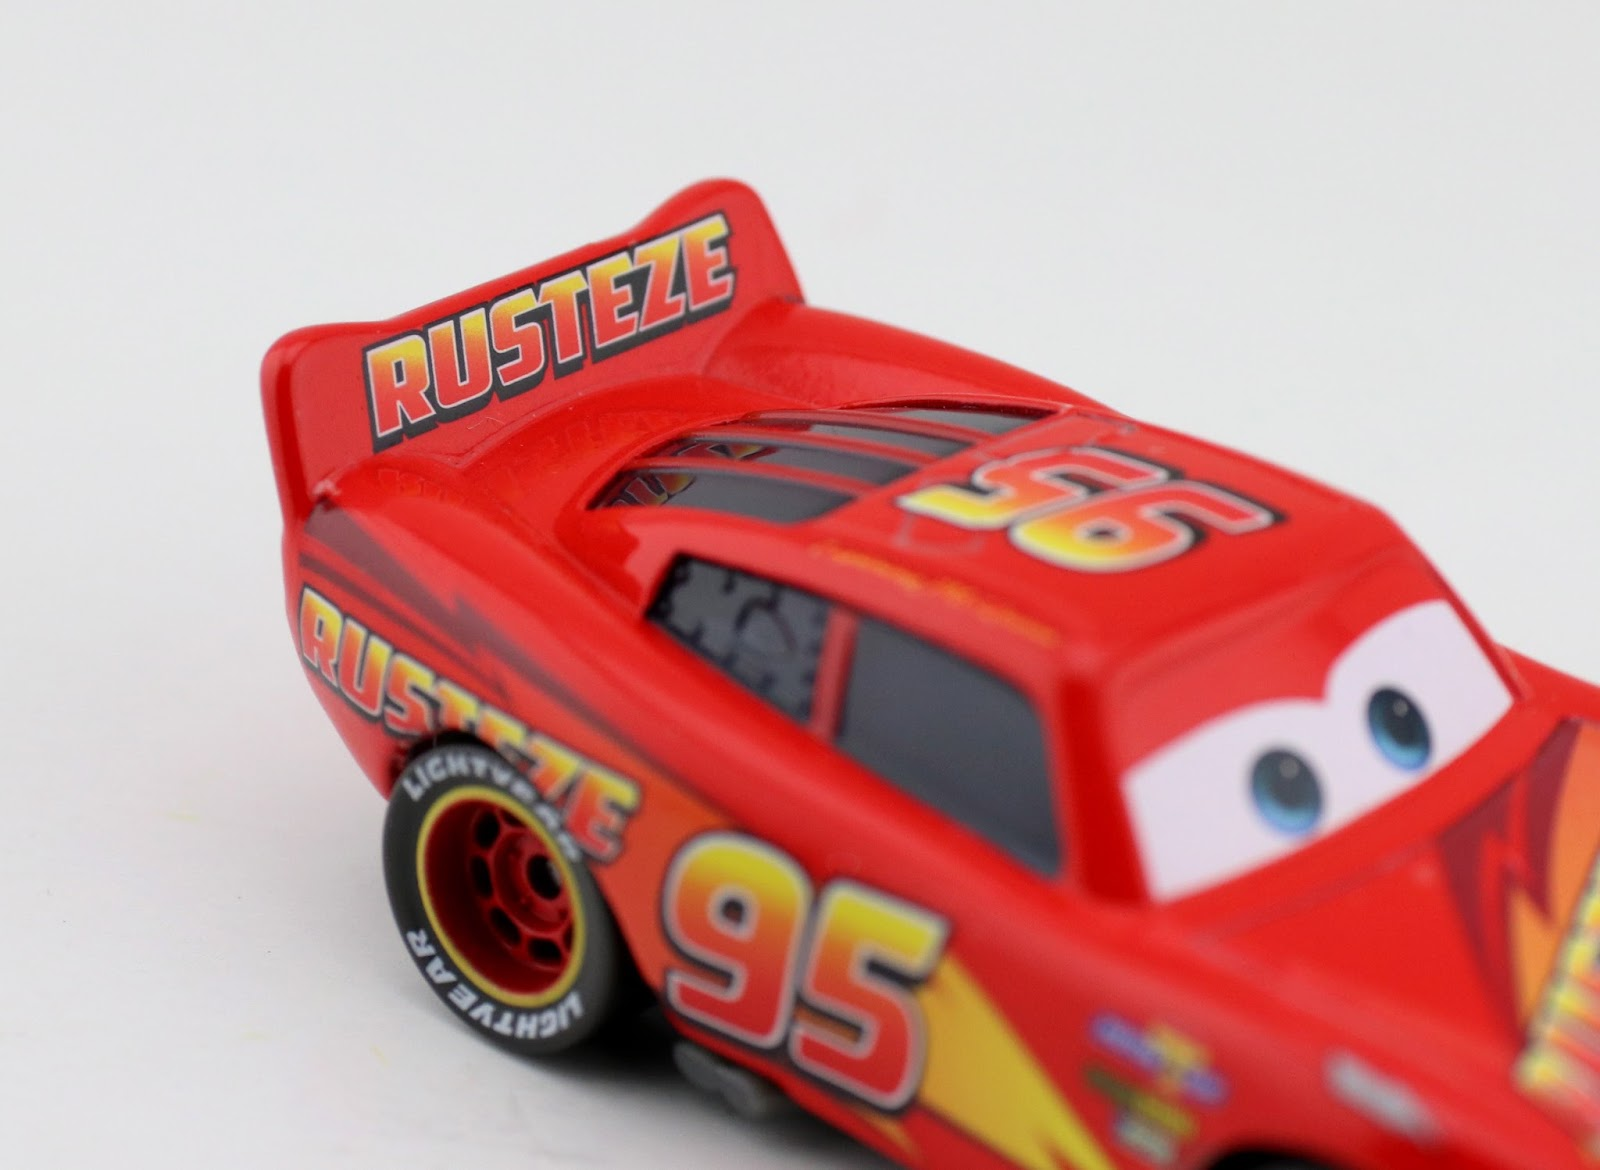 Cars 3: Rust-Eze Lightning McQueen